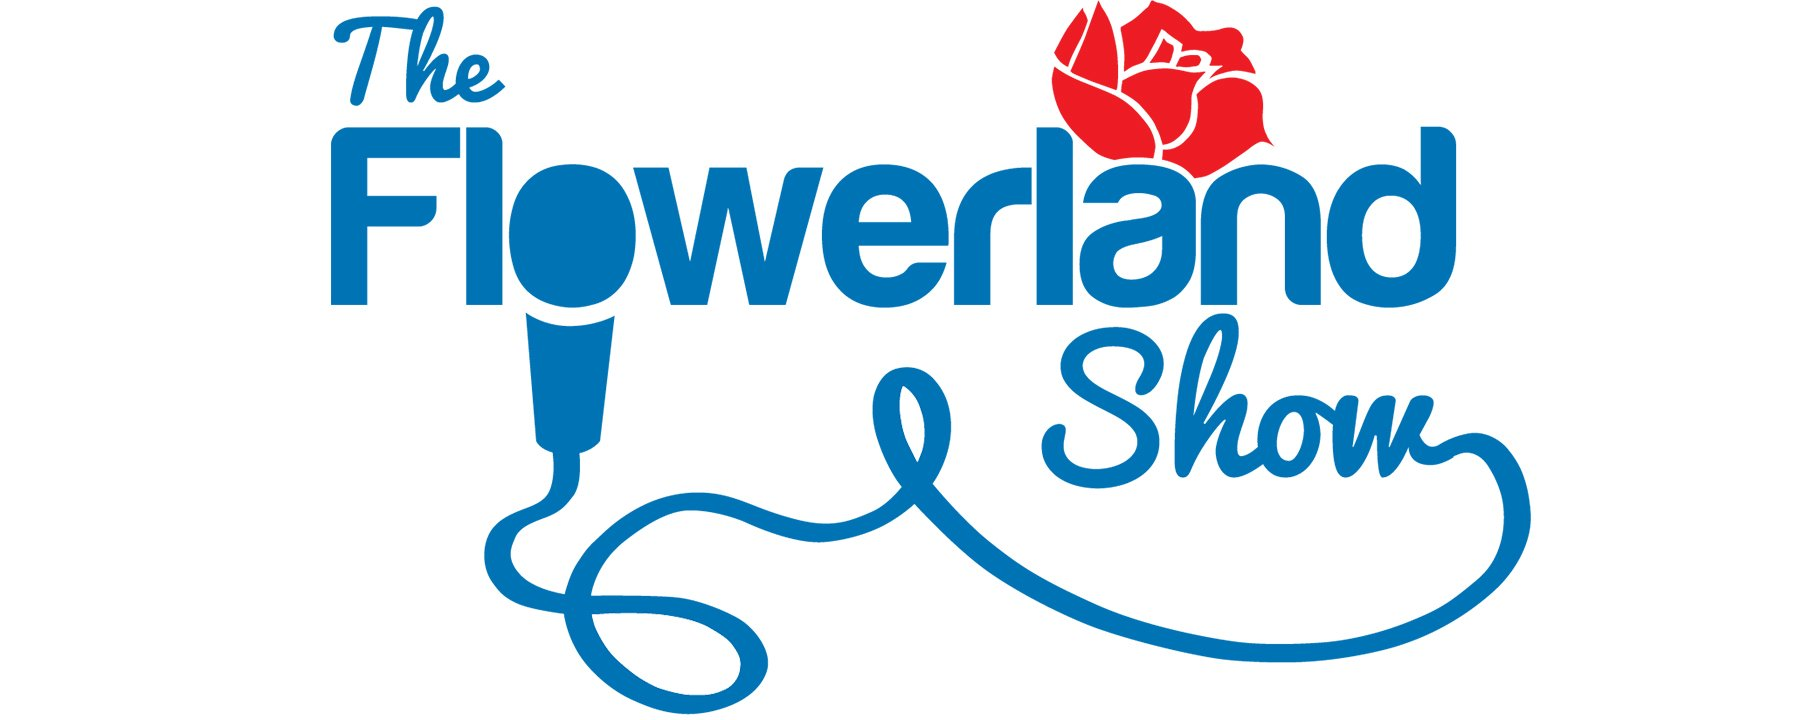 The Flowerland Show on Saturday mornings or by the podcast